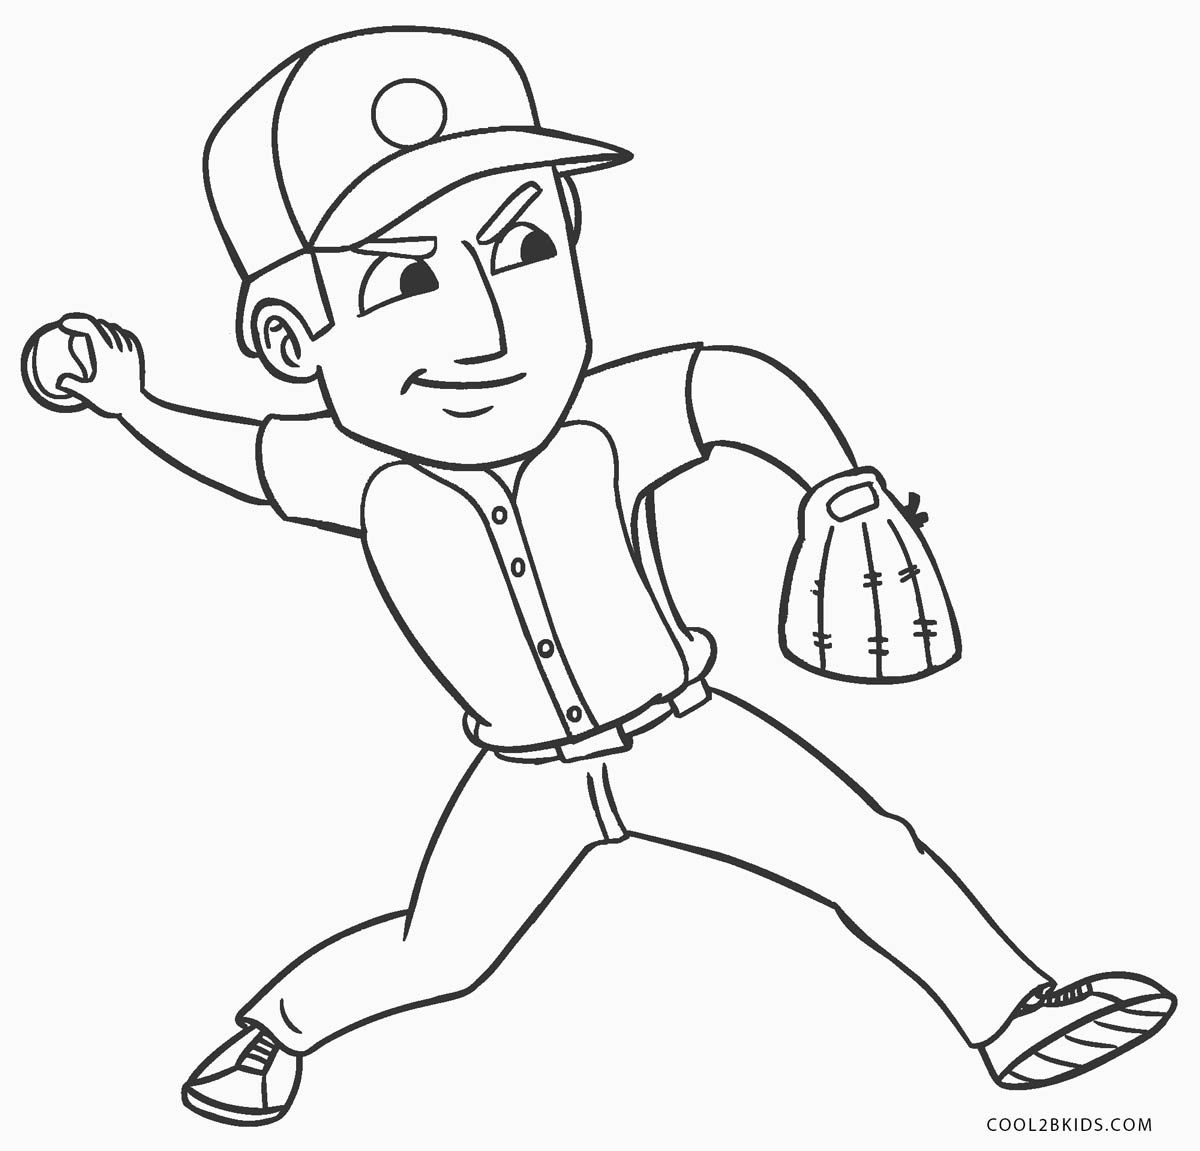 baseball coloring pictures baseball coloring pages customize and print pdf baseball pictures coloring